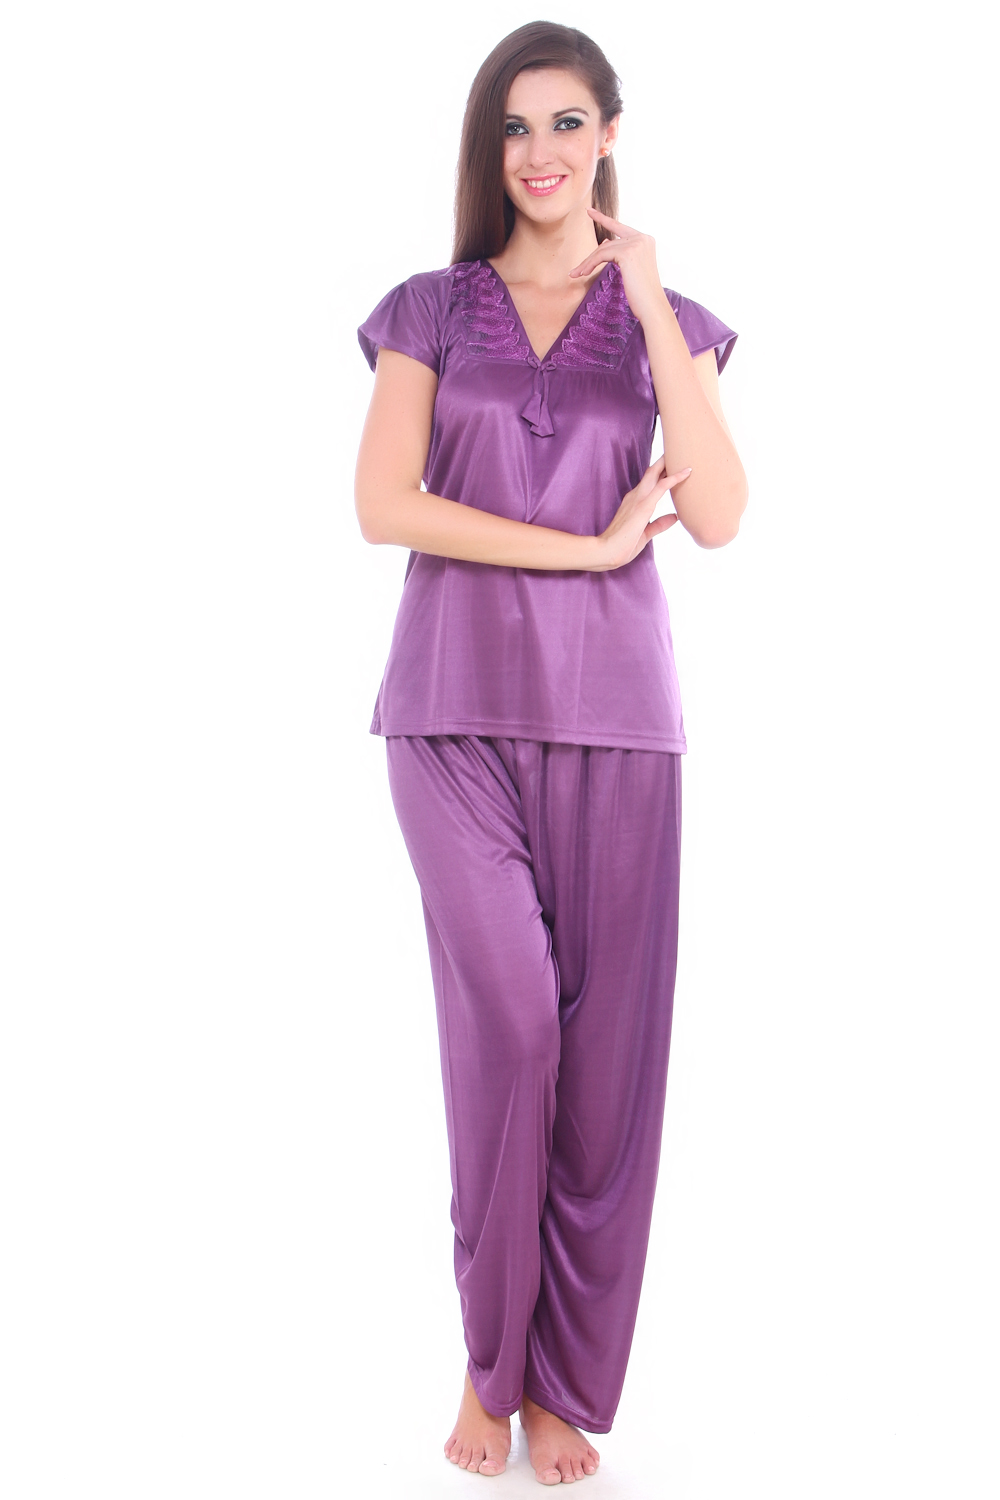 Find great deals on eBay for girls pajamas. Shop with confidence.